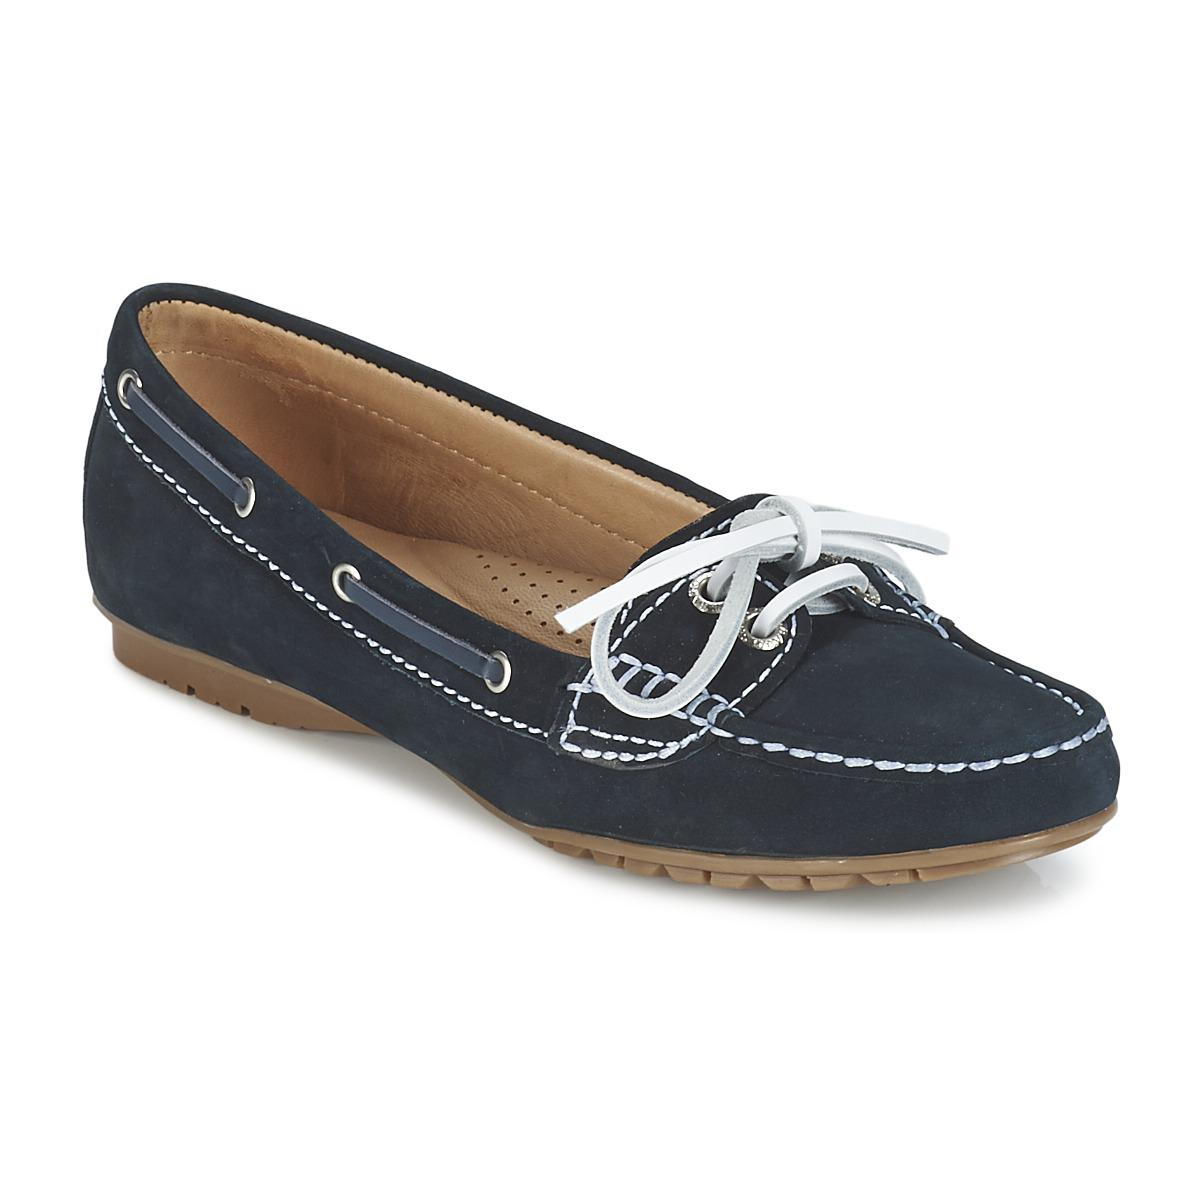 new product 7a1f7 ea541 sebago-blue-Meriden-Two-Eye-Womens-Loafers-Casual-Shoes-In-Blue.jpeg